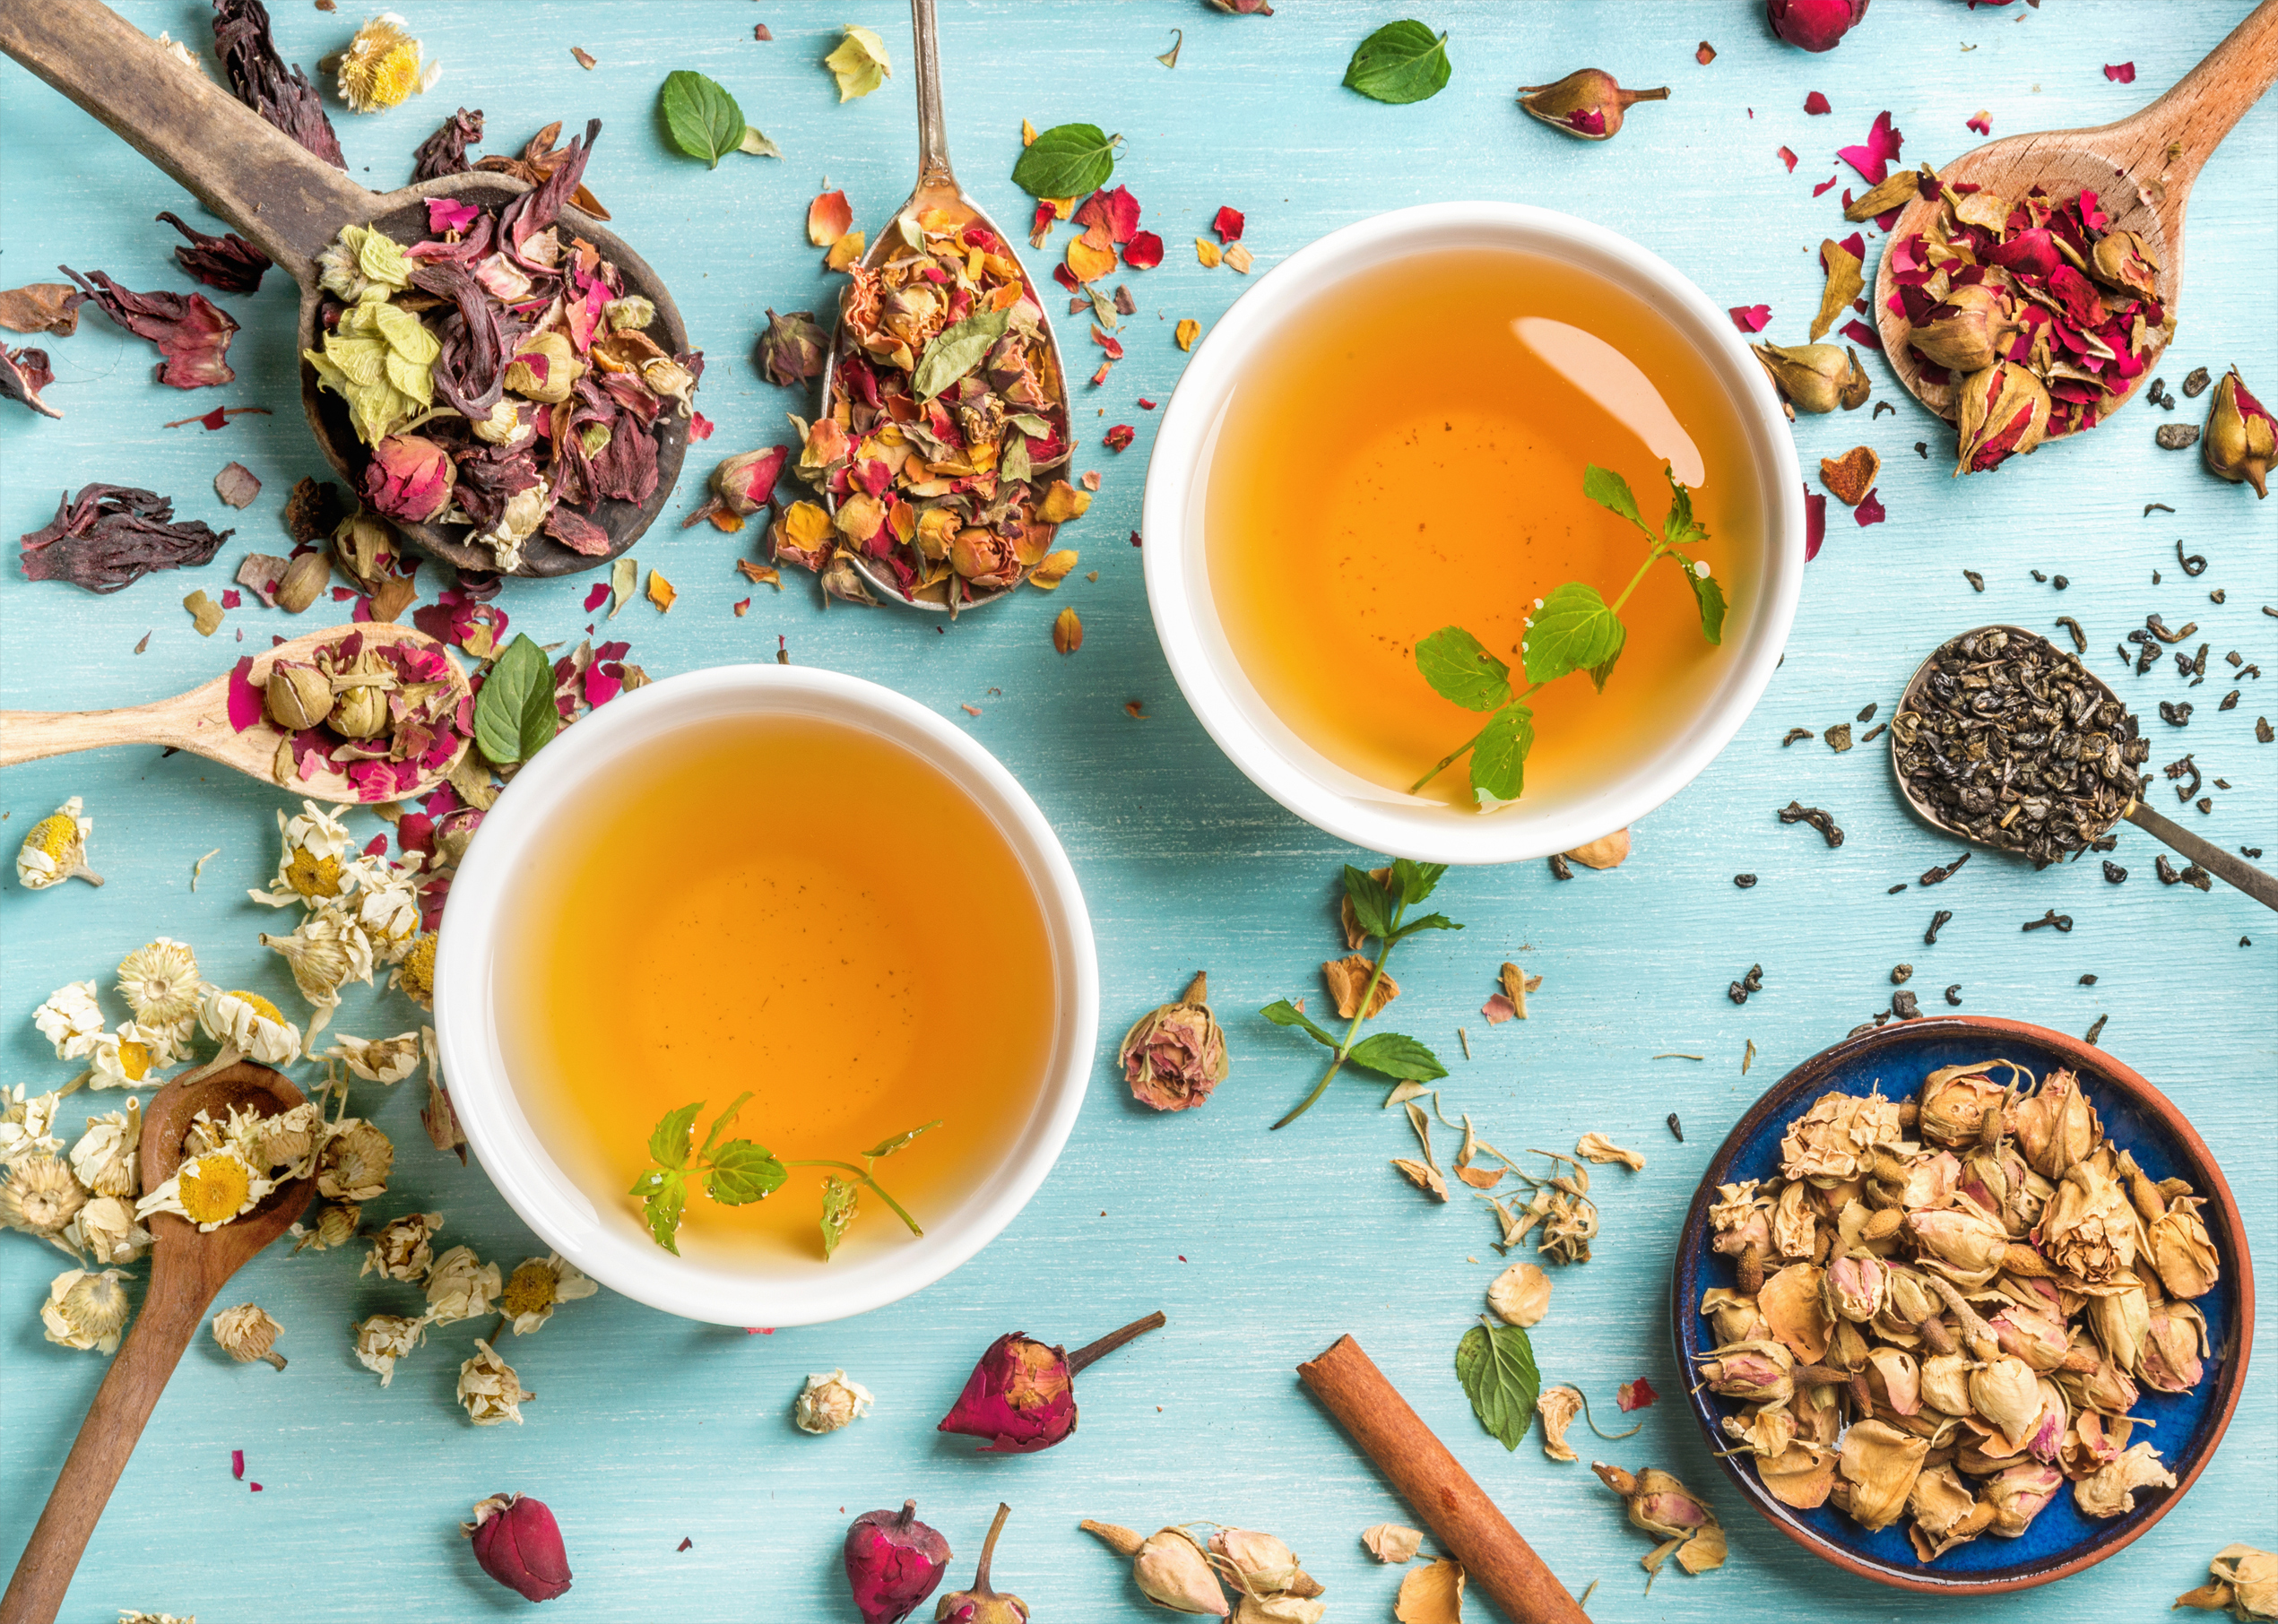 5 Best Teas that'll Make You Rediscover Your Love For Tea